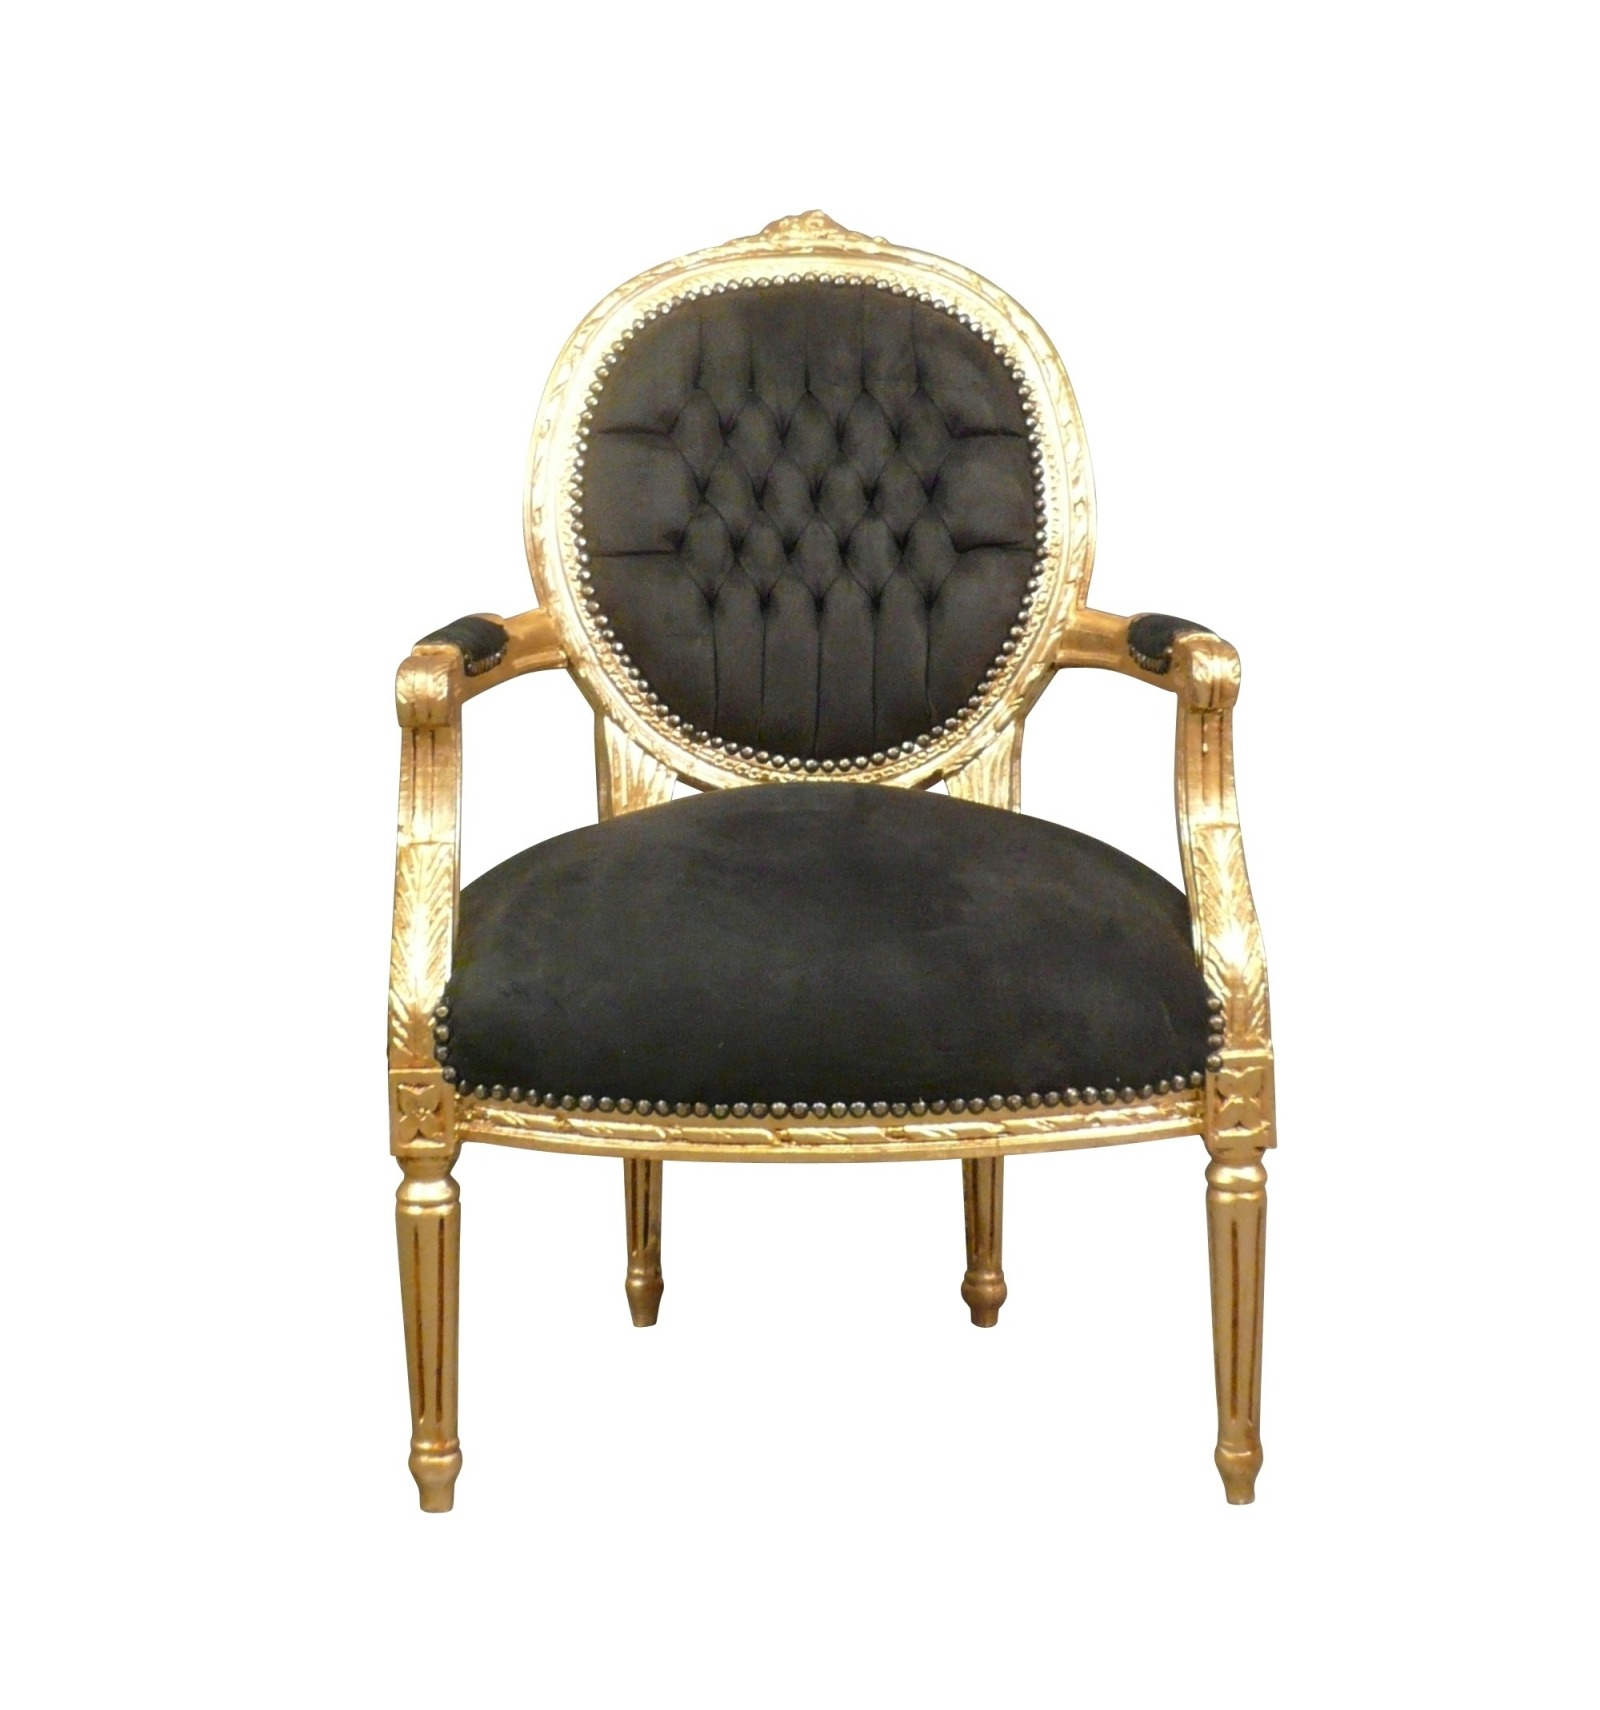 chair louis xvi black and gold wood. Black Bedroom Furniture Sets. Home Design Ideas